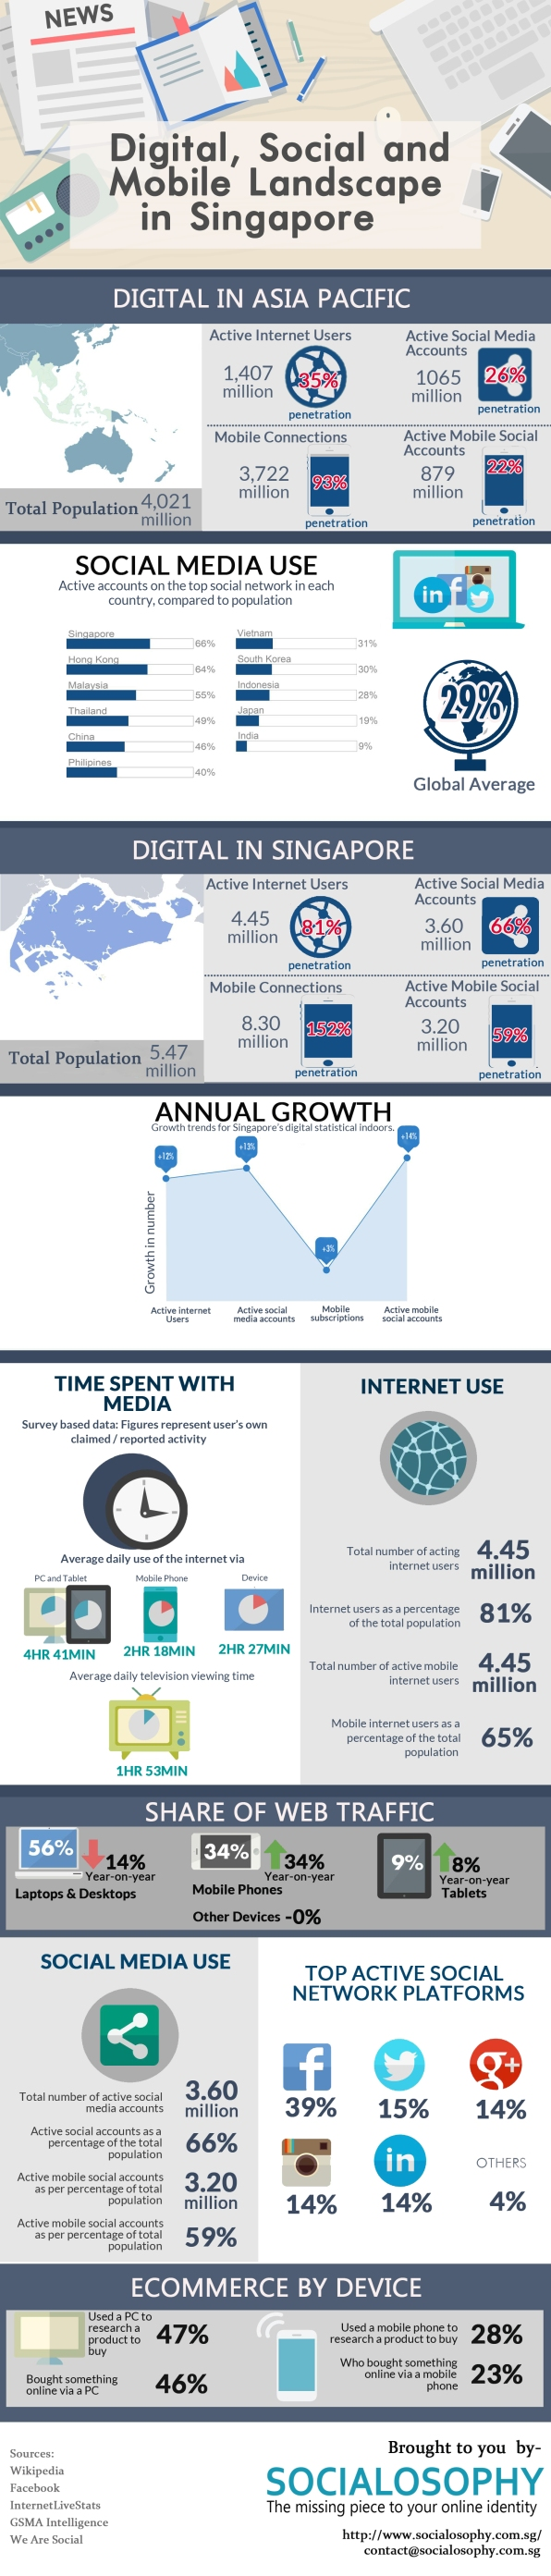 infographic, singapore, social media, digital marketing, mobile usage, trends